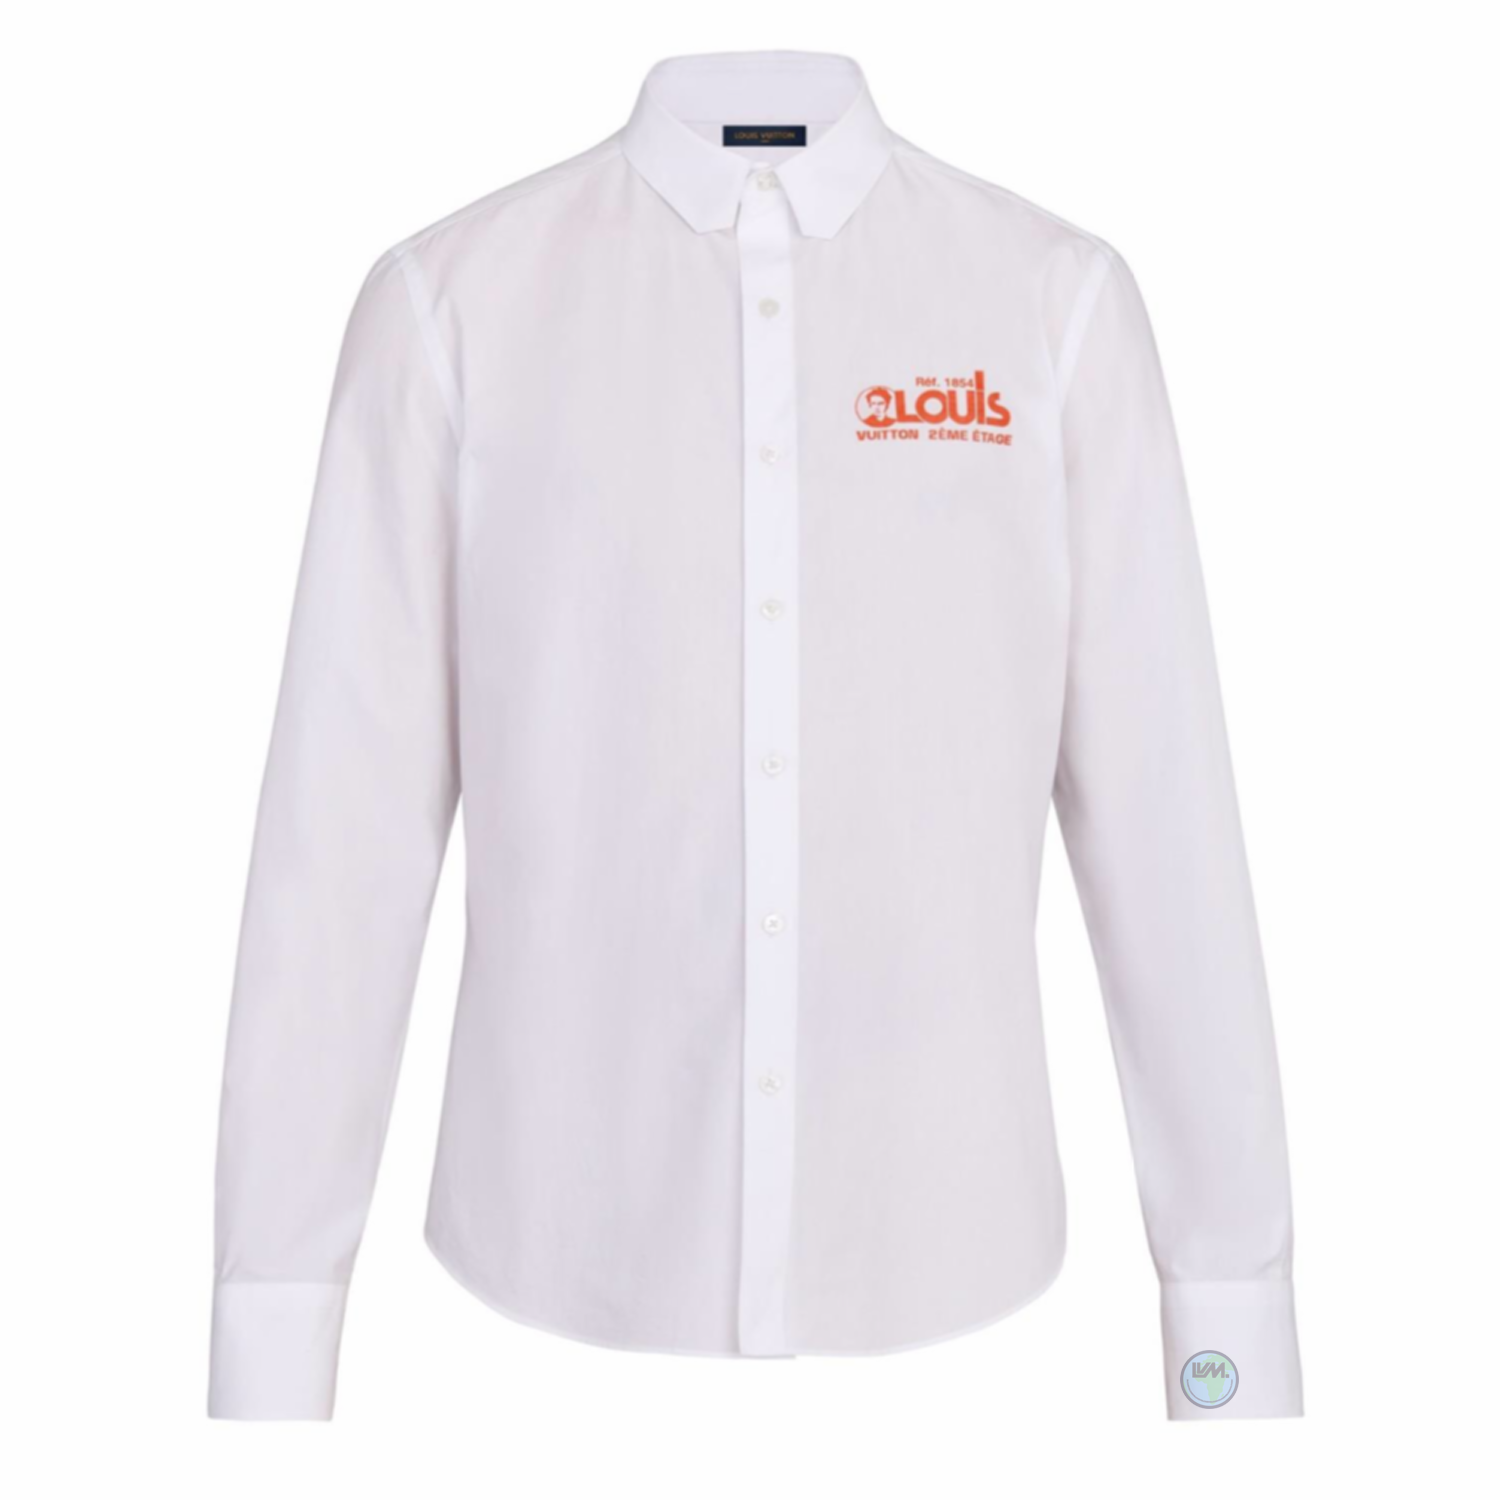 REGULAR SHIRT - €550 $7351A5DCLBLANC